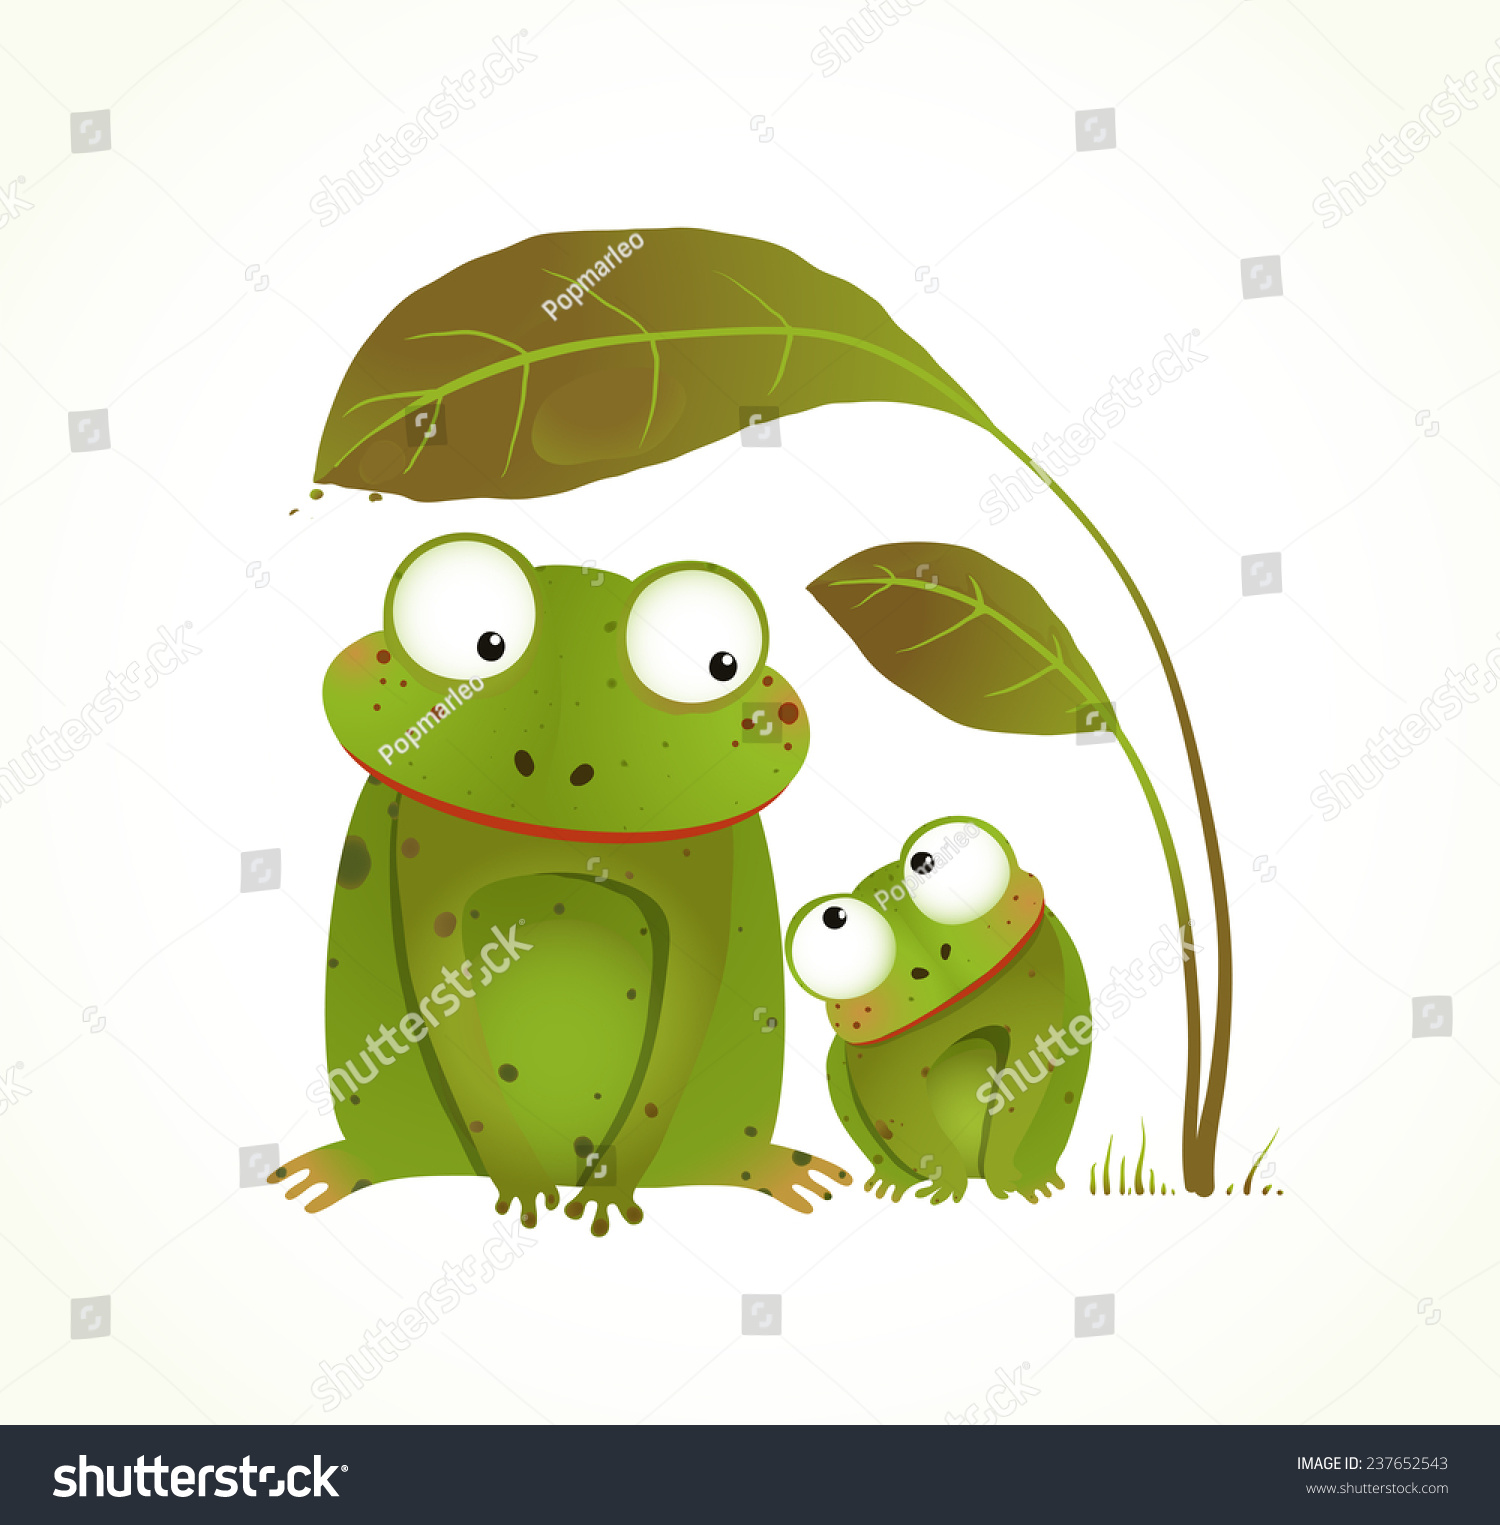 two frogs mother baby childish animal stock illustration 237652543